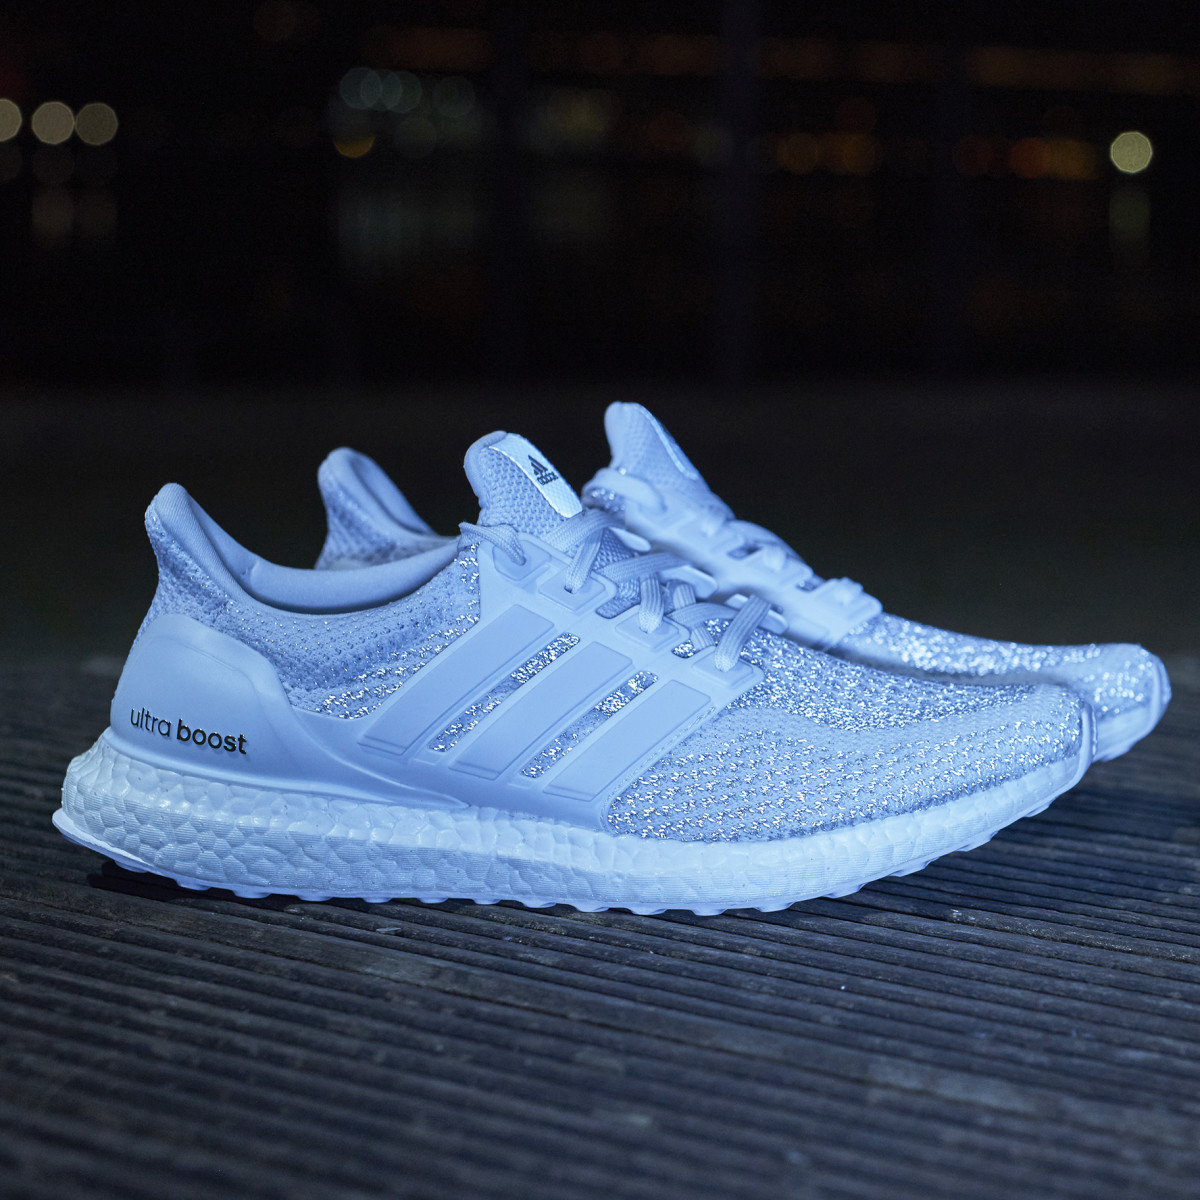 adidas-ultra-boost-reflective-pack-06.jpg